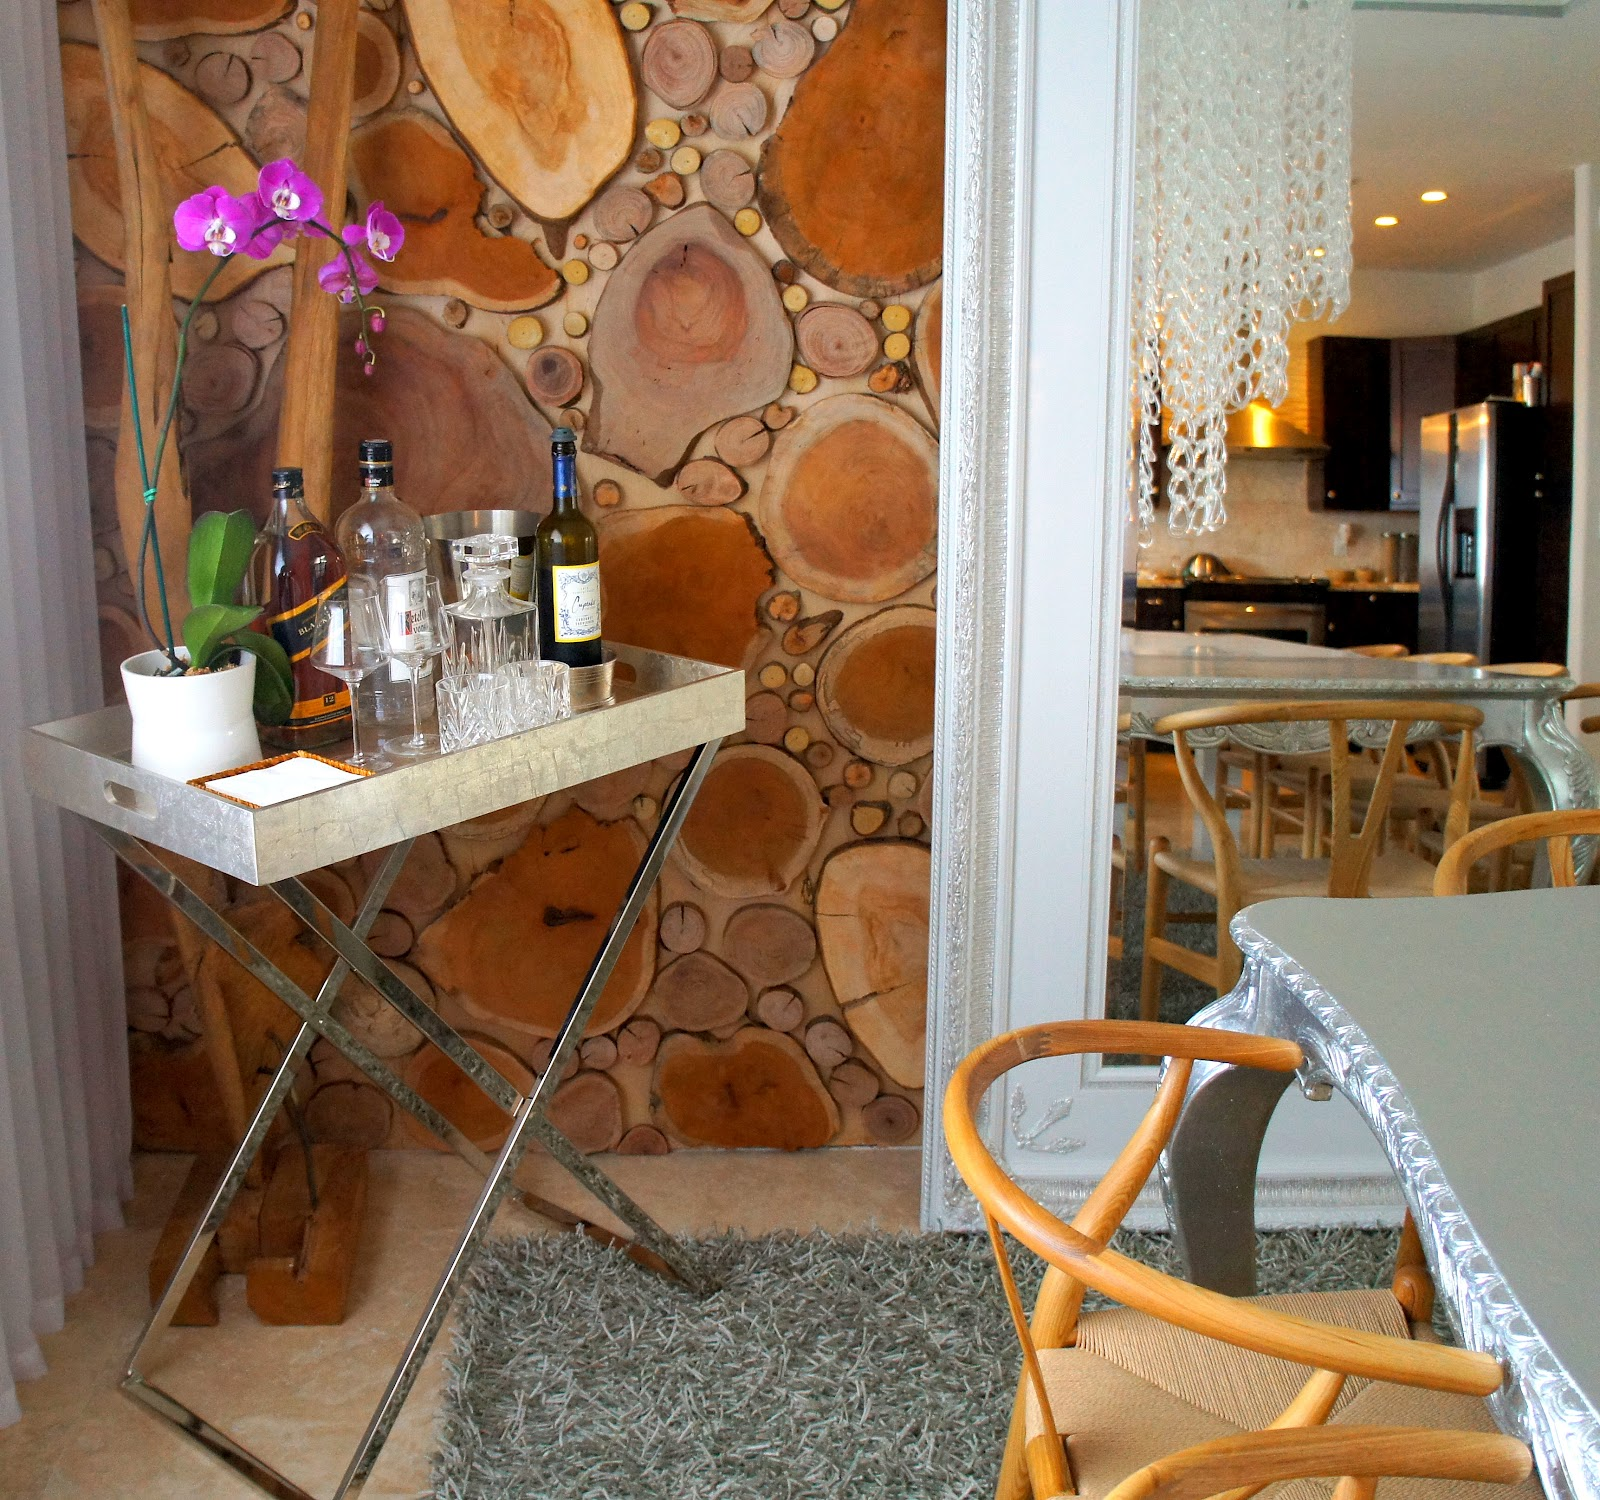 When Hosting A Party Or Simply Having Dinner How Nice Is It To Have A  Little Table Close By To Keep Your Bottles And Glasses On For Easy Access?